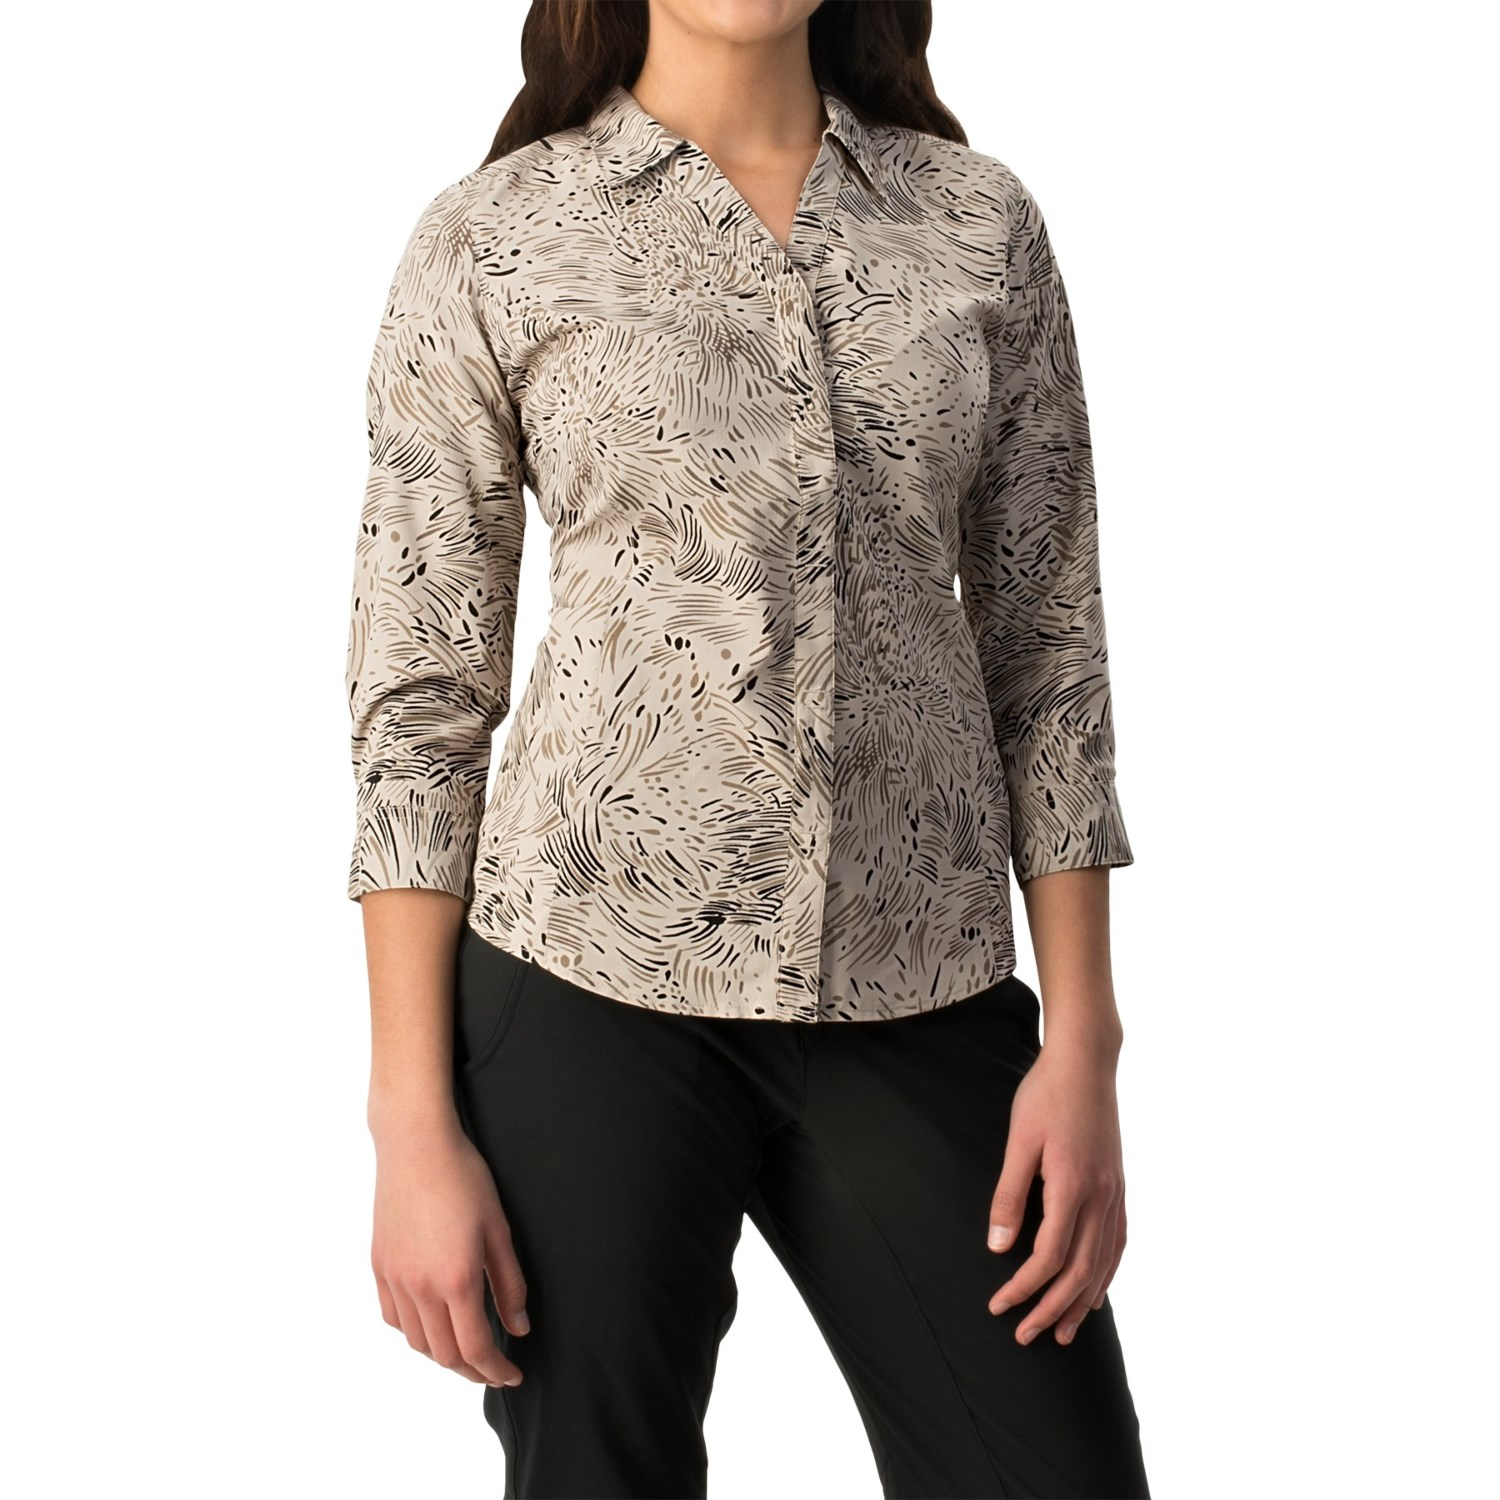 Royal robbins expedition stretch shirt for women save 58 for Royal robbins expedition shirt 3 4 sleeve women s